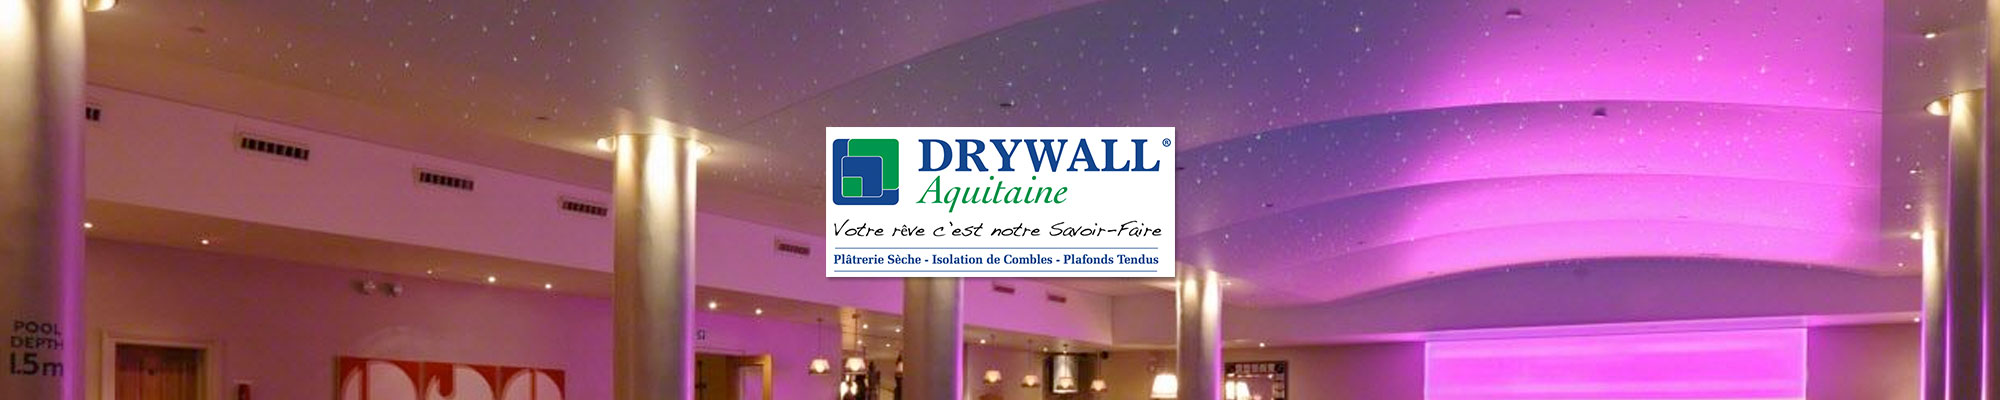 plafonds tendus drywall aquitaine